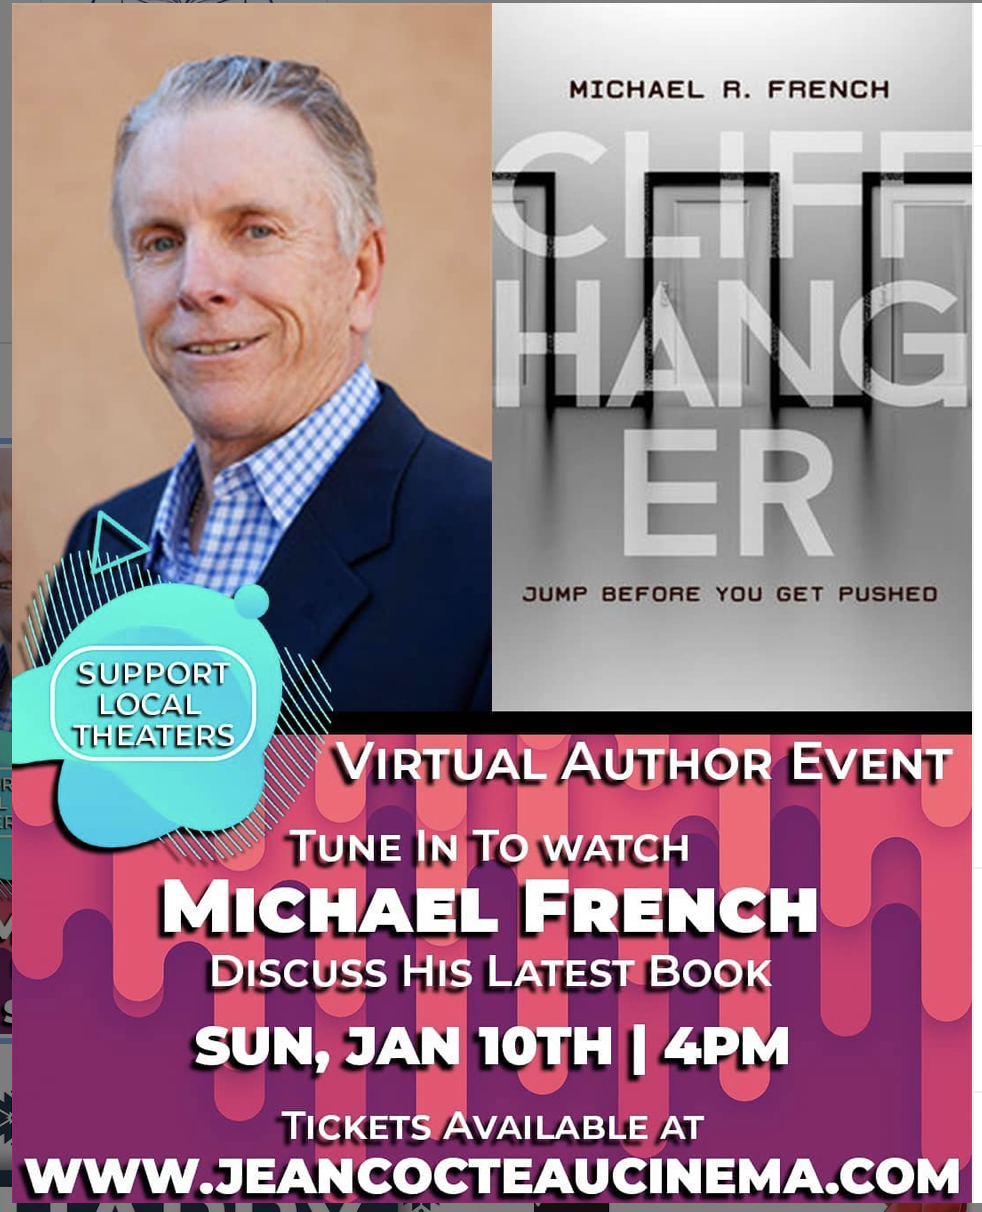 Michael R. French Book Reading